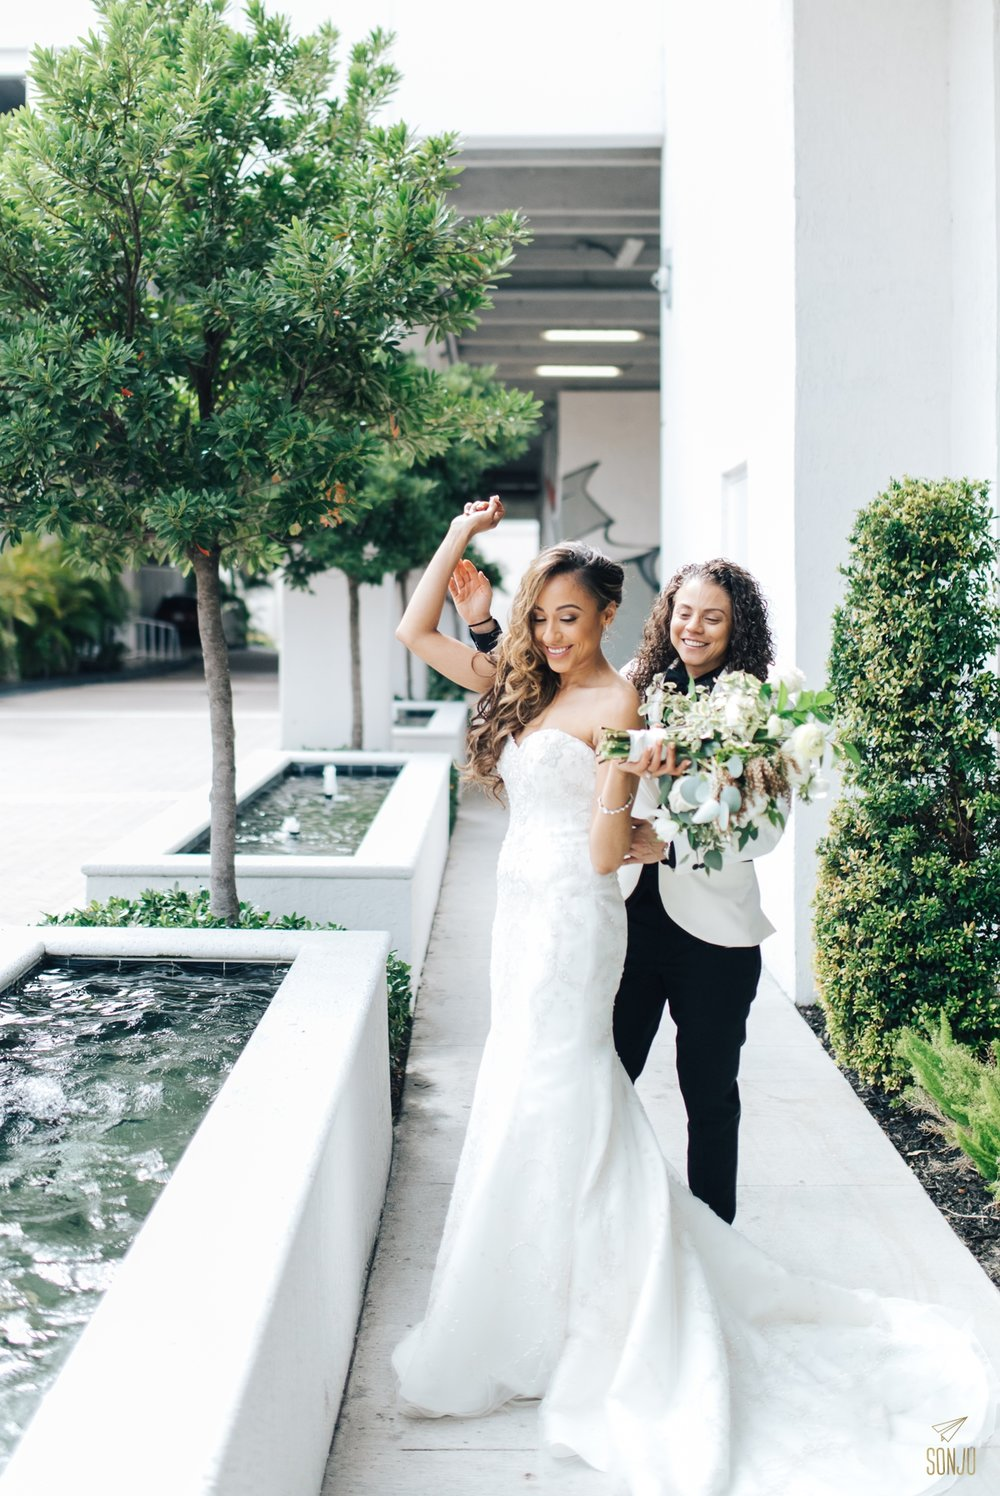 Florida-Same-Sex-Wedding-Photographer-Lavan-Events-Sonju-Kristina-Jomary00042.jpg